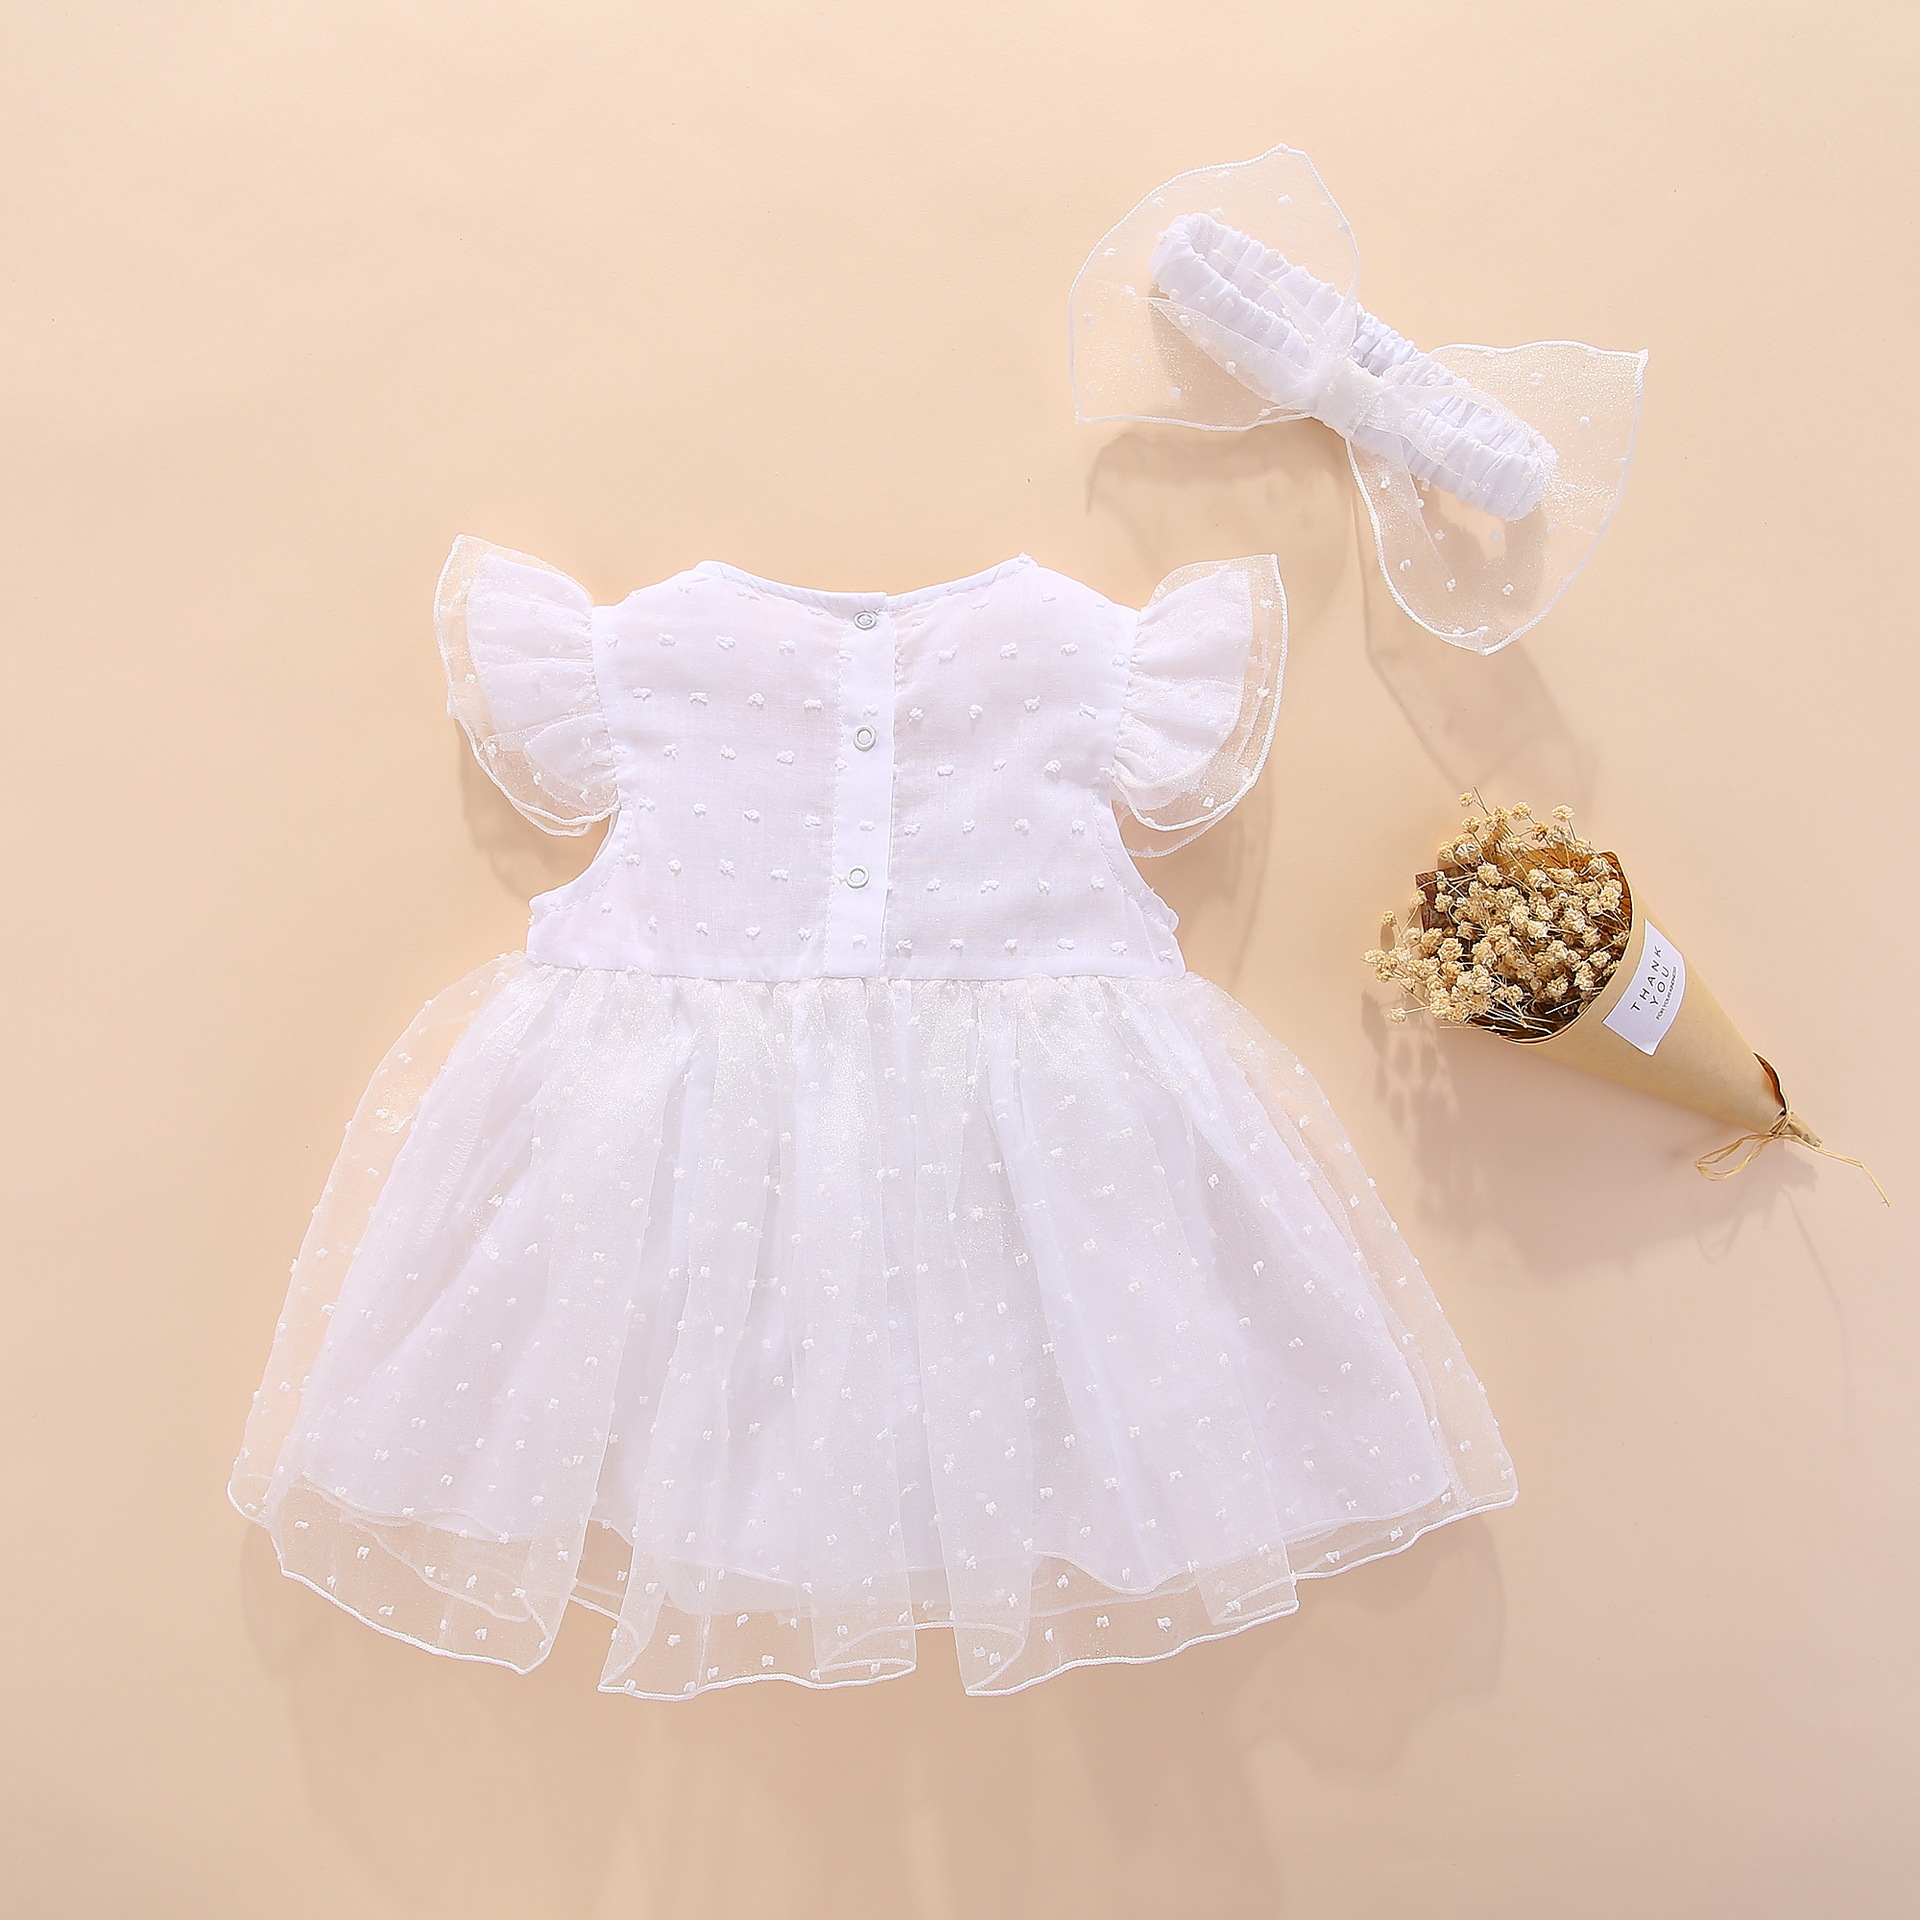 newborn baby dress lace set 3 months baby clothing my first birthday 6 baby clothes girl summer princess tutu romper bodysuit